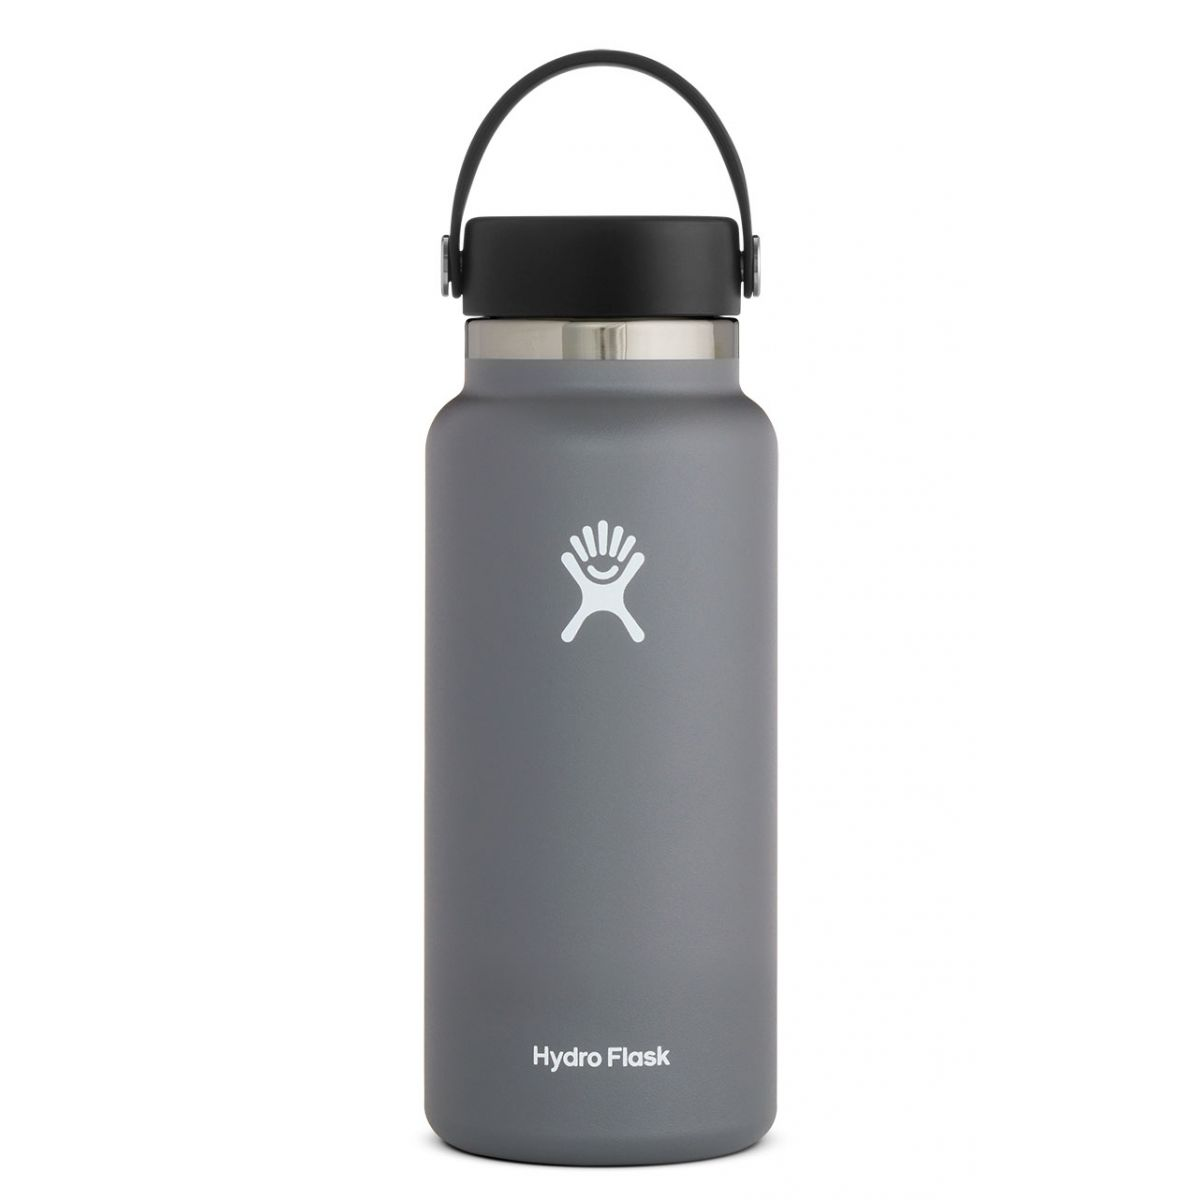 Image For Hydroflask Insulated Wide Mouth Water Bottle, Stone